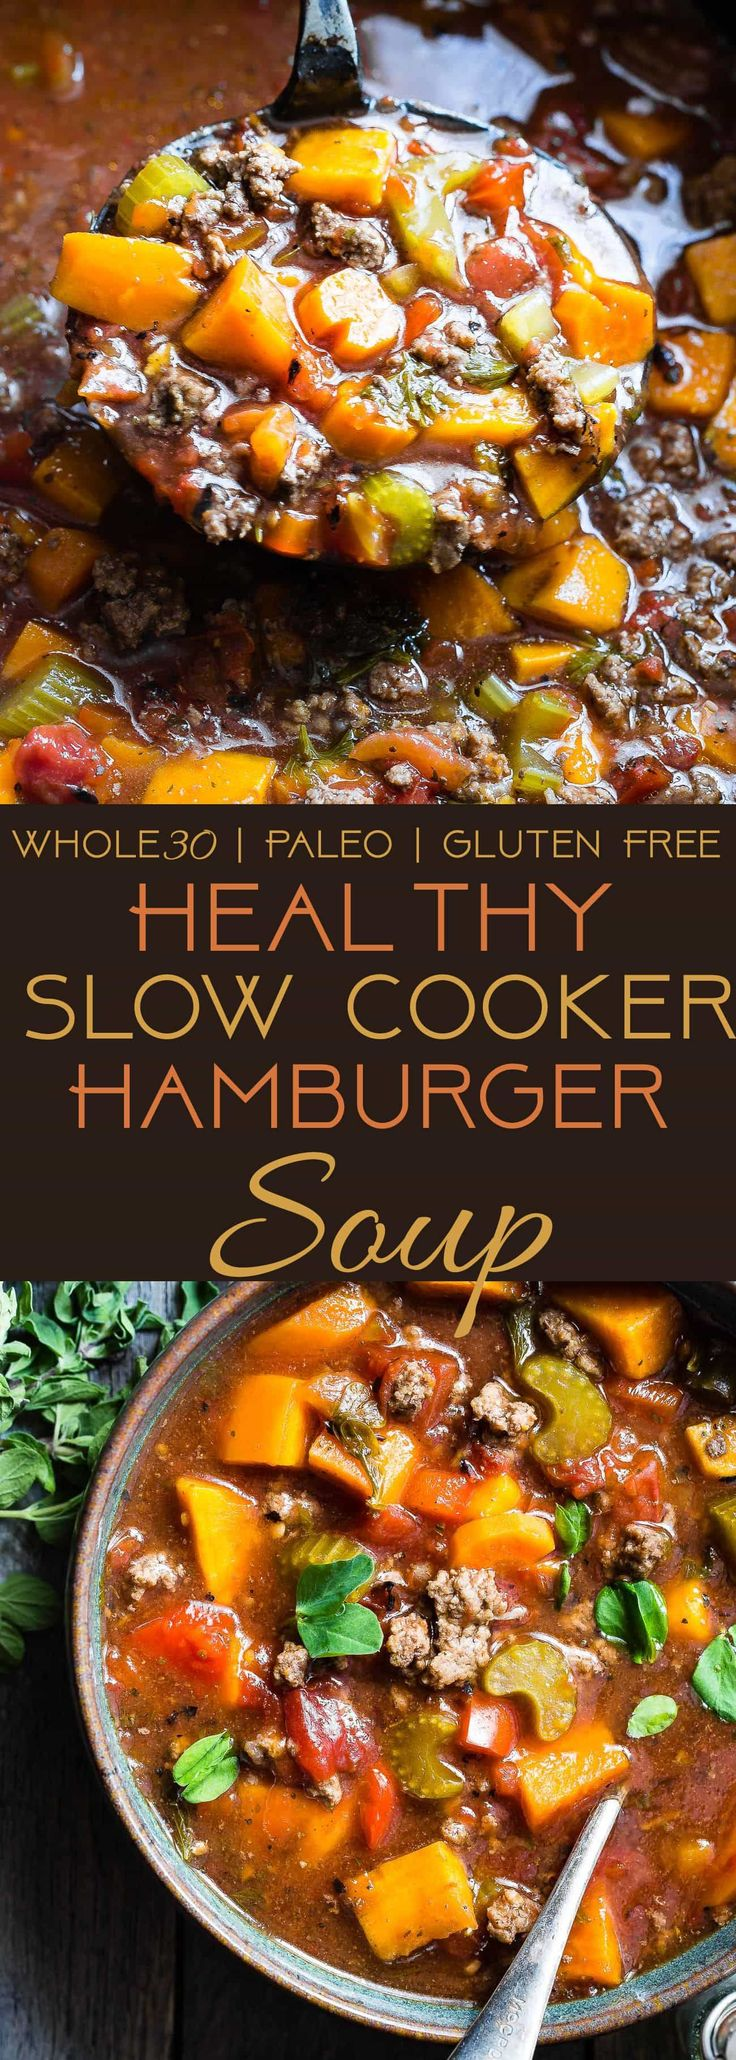 Paleo Slow Cooker Hamburger Soup -This easy, healthy hamburger soup is made in the slow cooker and is a grain/dairy/sugar/gluten free and whole30 dinner that the whole family will love! Makes great leftovers too! | Foodfaithfitness.com | @FoodFaithFit  comfort foods, grain free, beef stews, crock pot, kid friendly